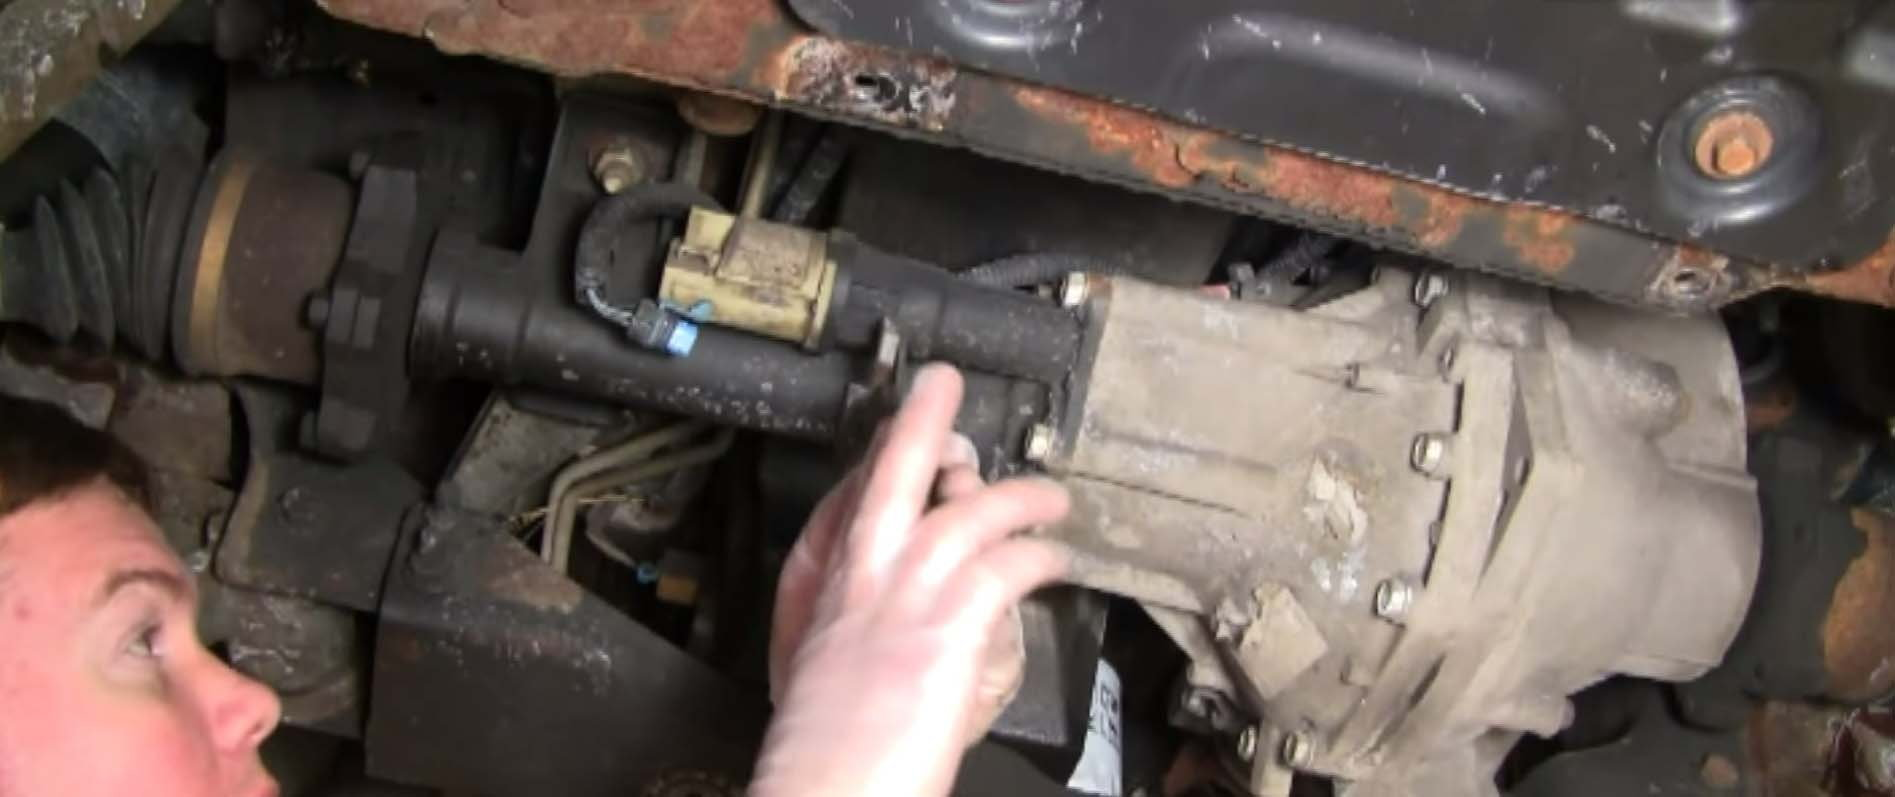 chevy 4x4 actuator wiring diagram 1989 honda civic distributor chevrolet silverado 1999 2006 gmt800 how to replace 4wd